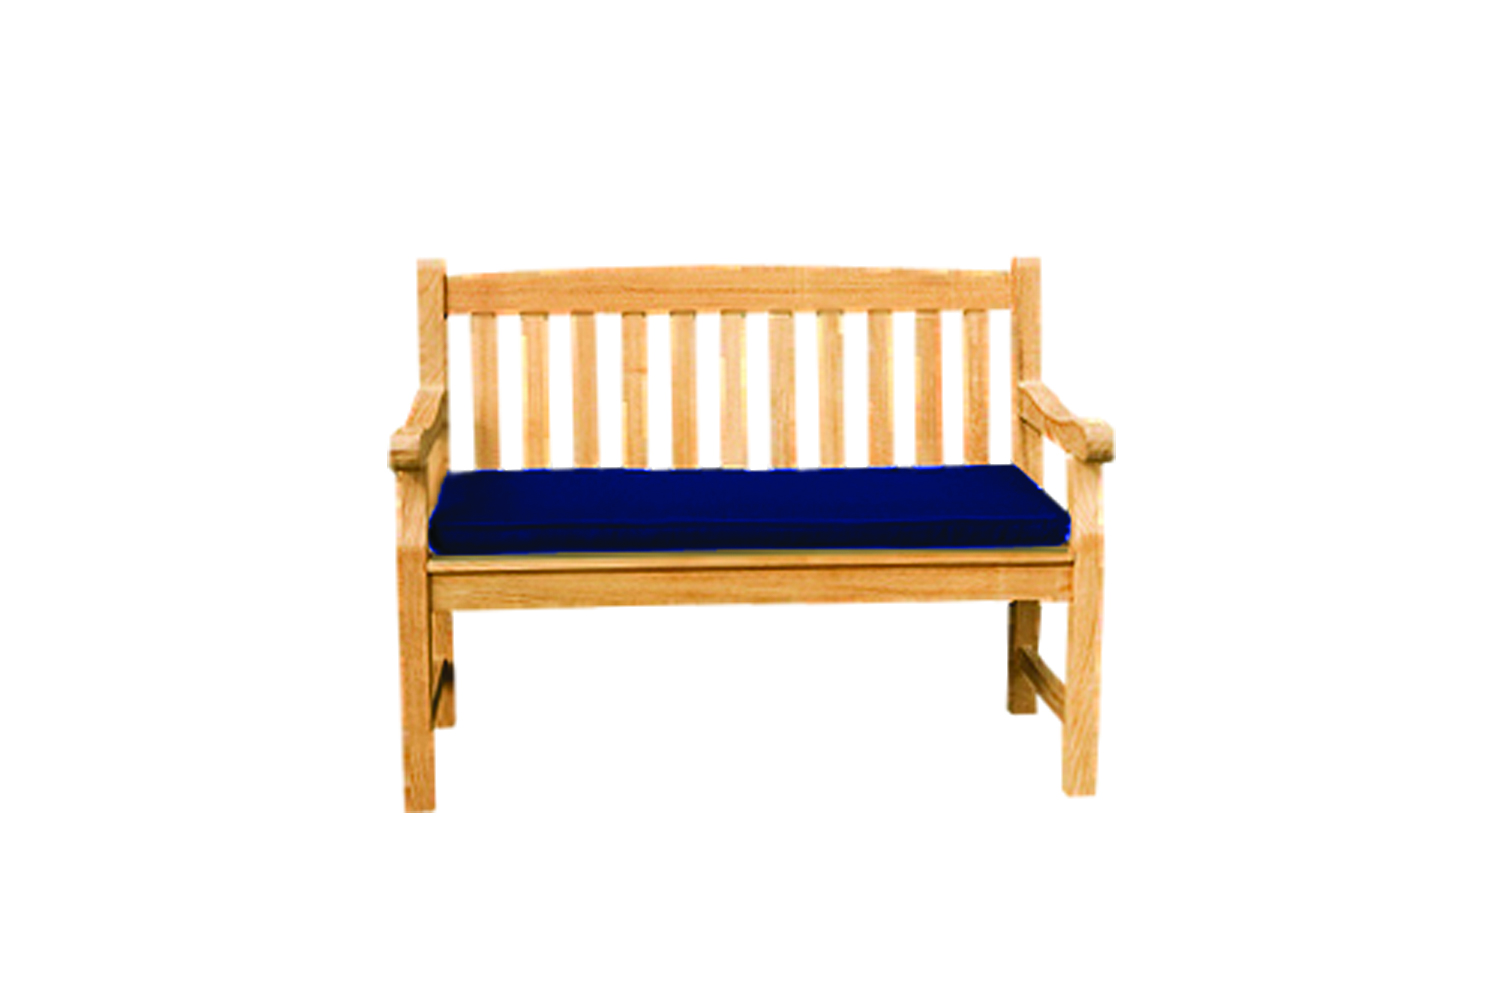 4 Foot Bench Cushion By Royal Teak Collection Outdoor Teak More